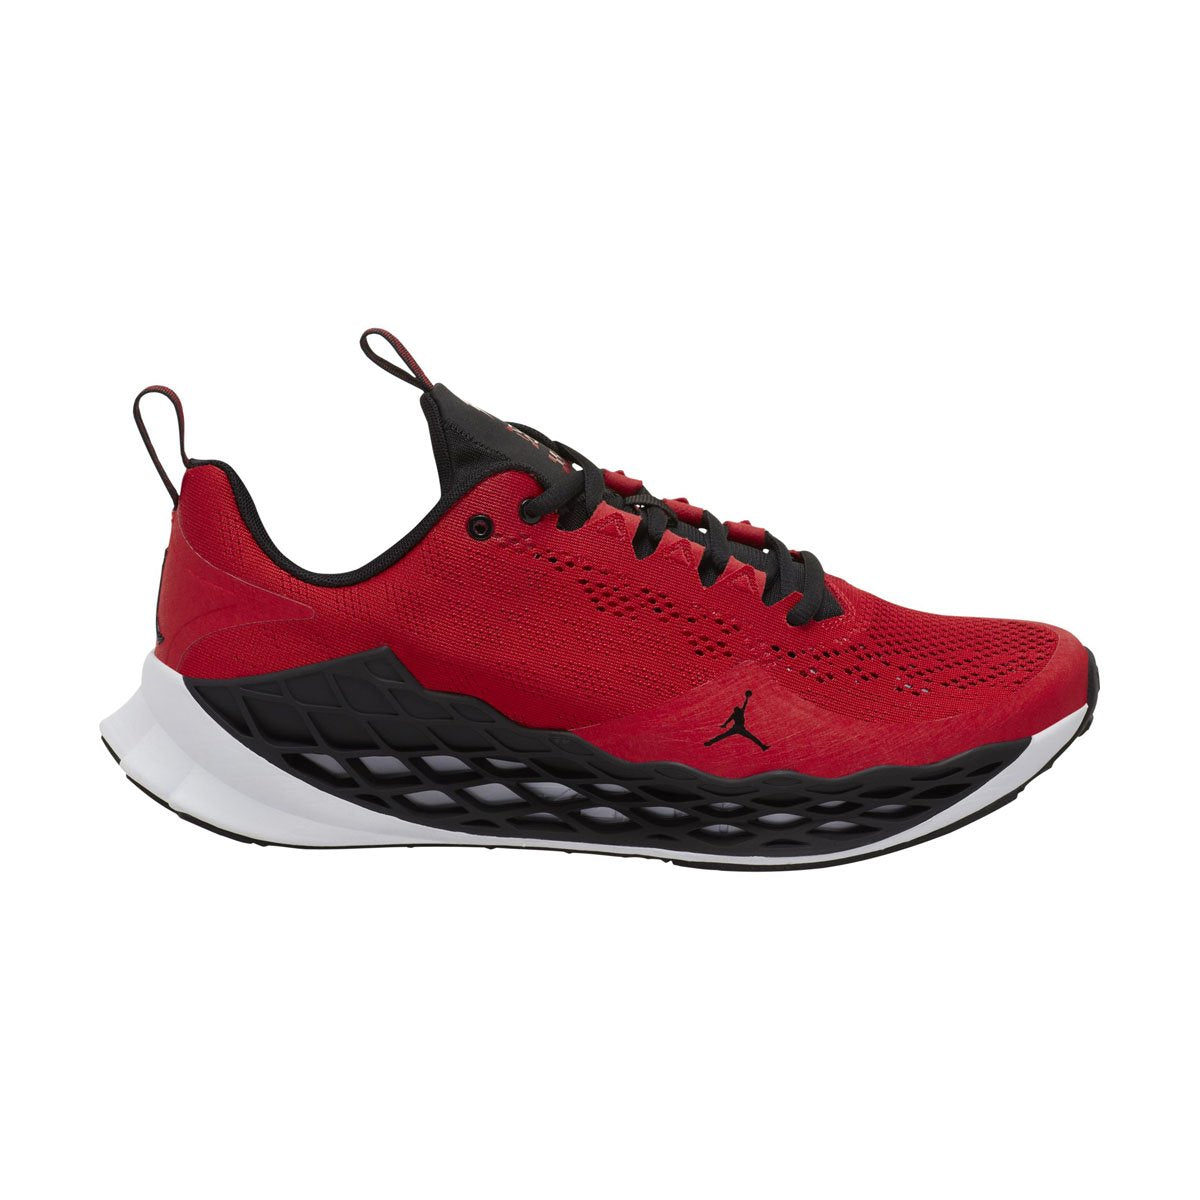 Men's Jordan Zoom Trunner Advance